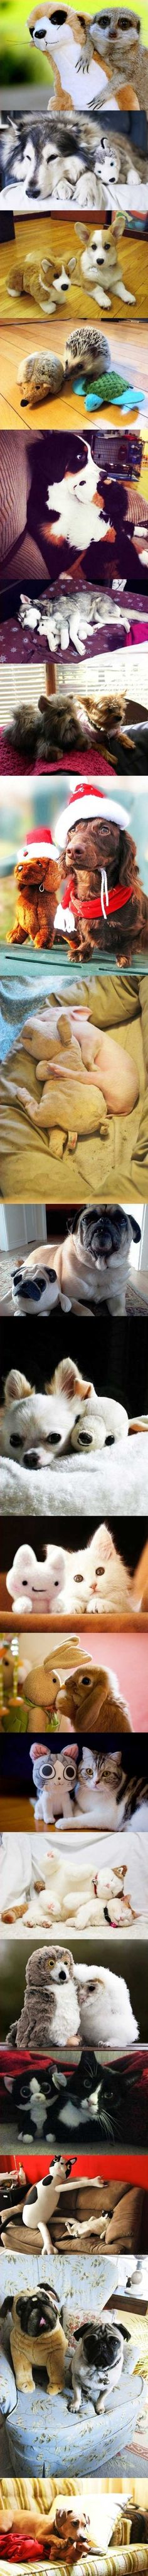 Animals and their stuffed friends.